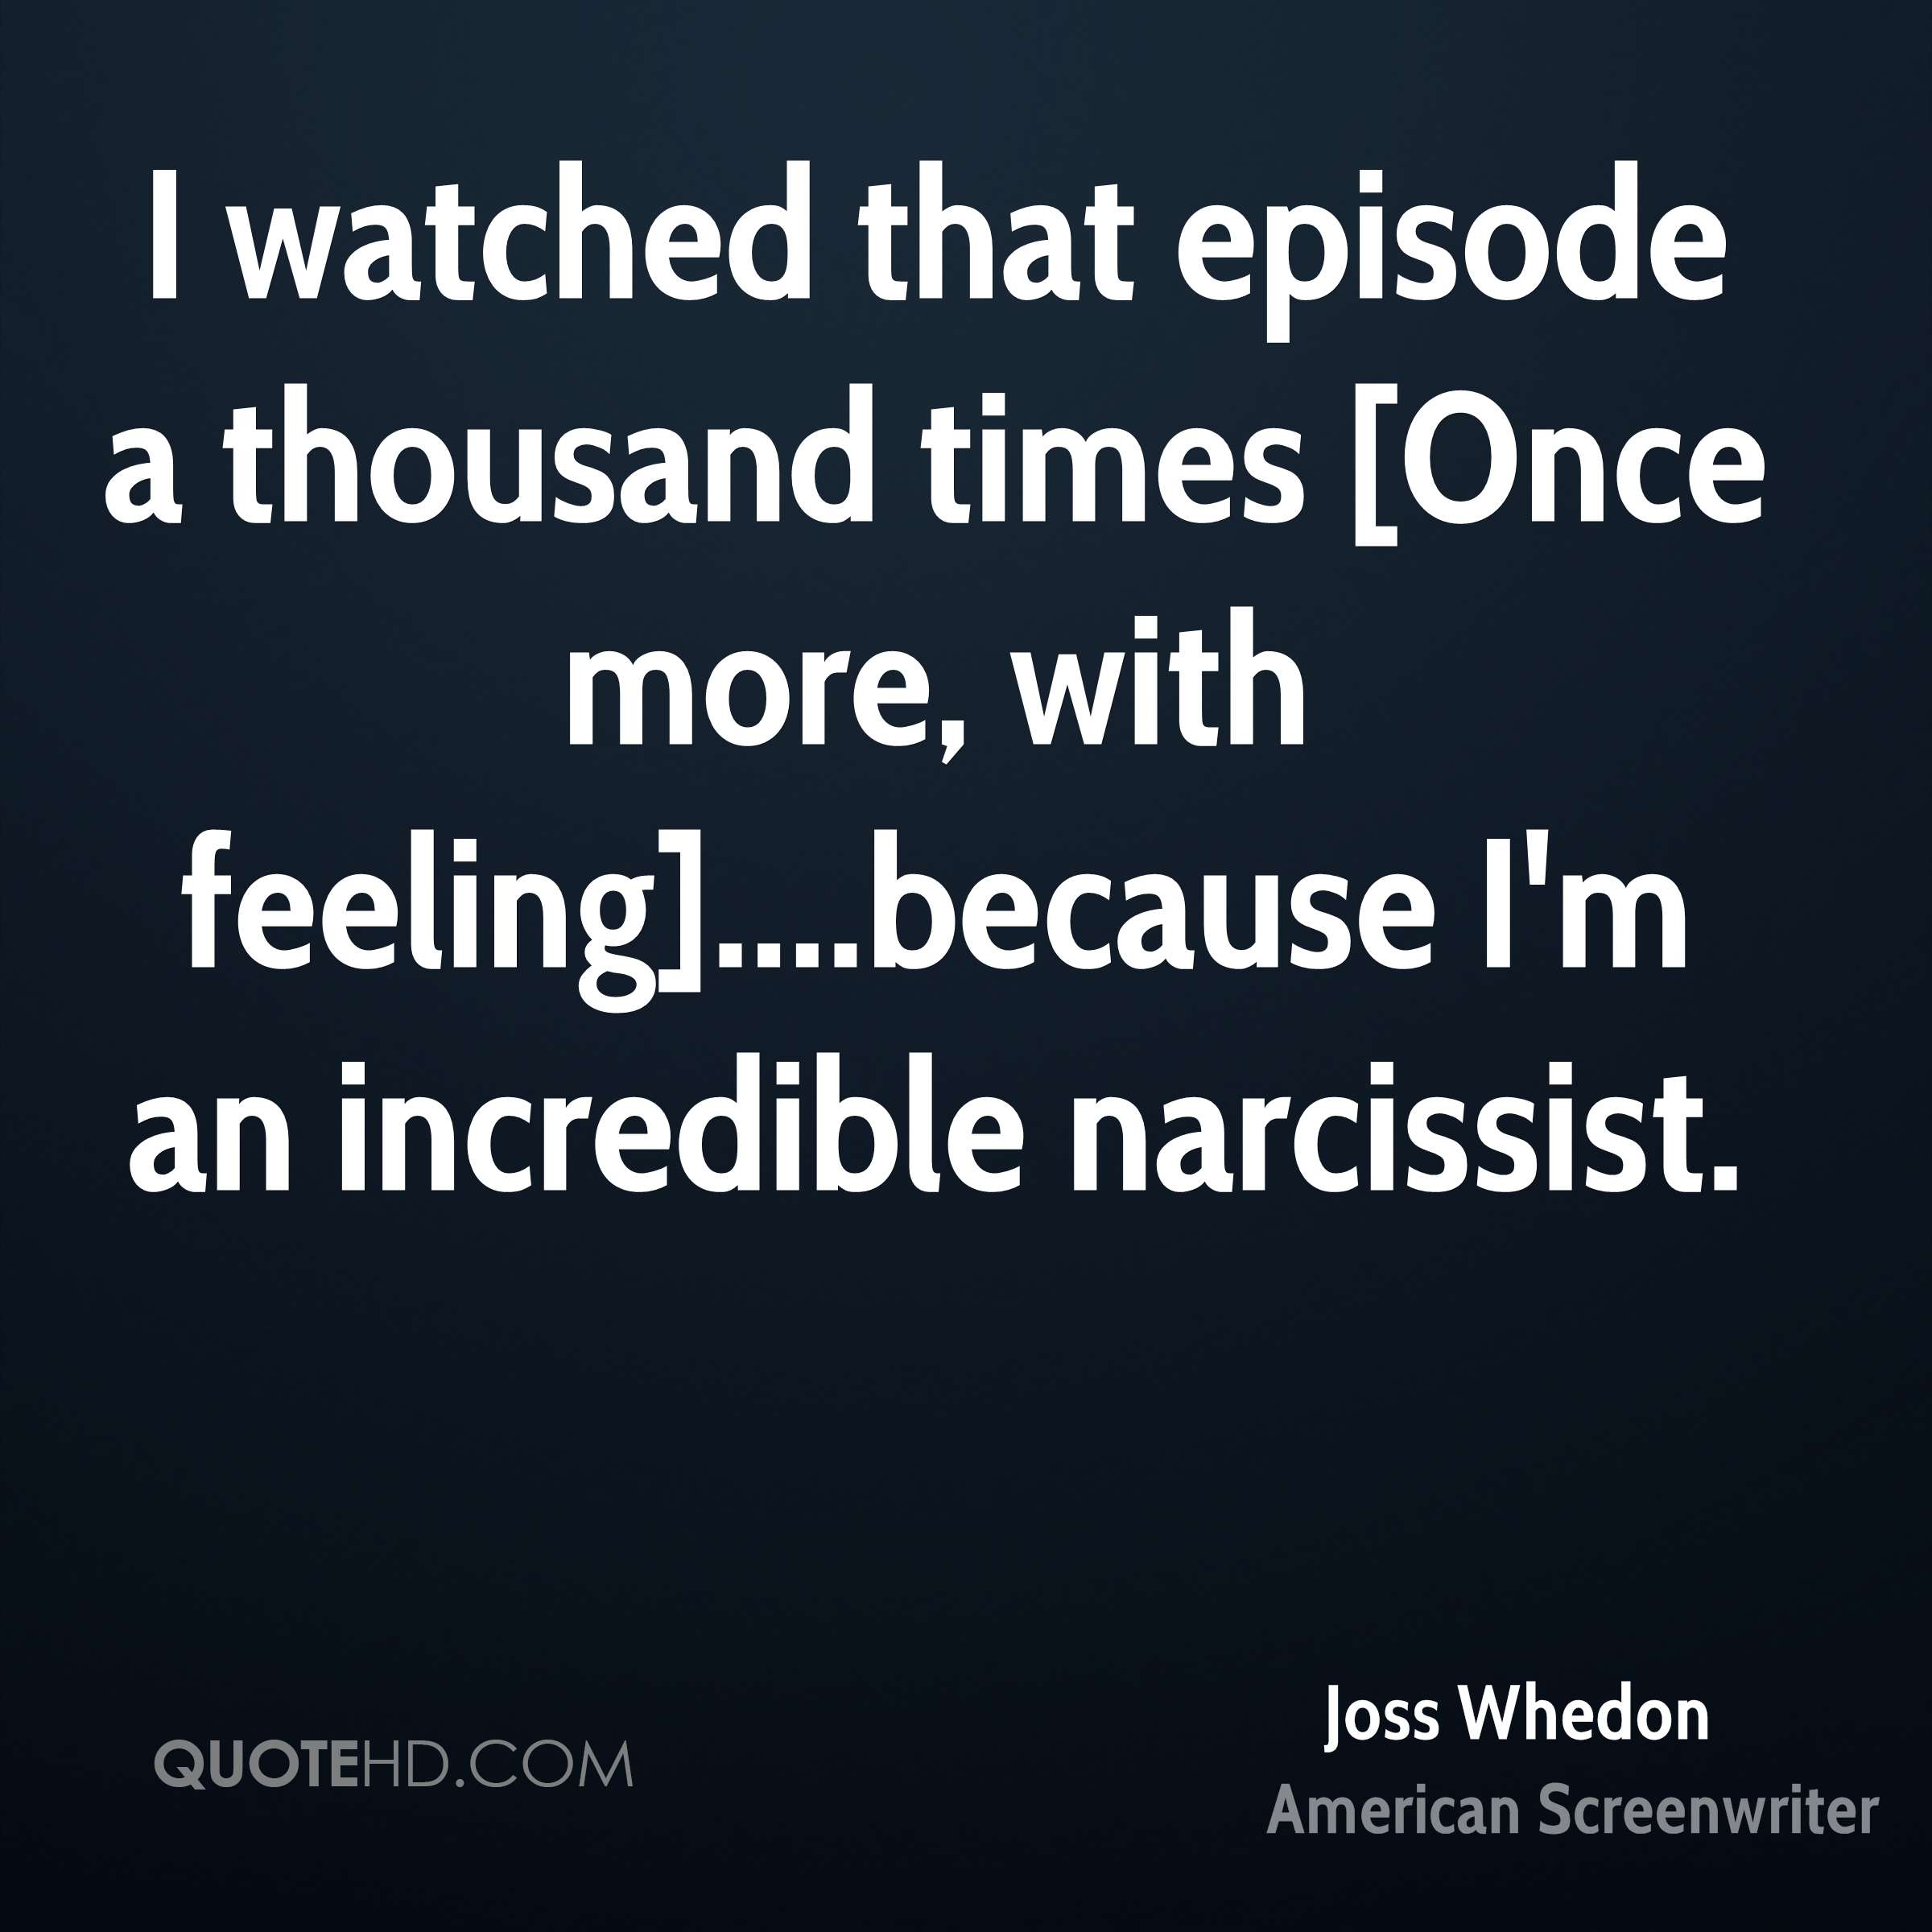 I watched that episode a thousand times [Once more, with feeling]....because I'm an incredible narcissist.